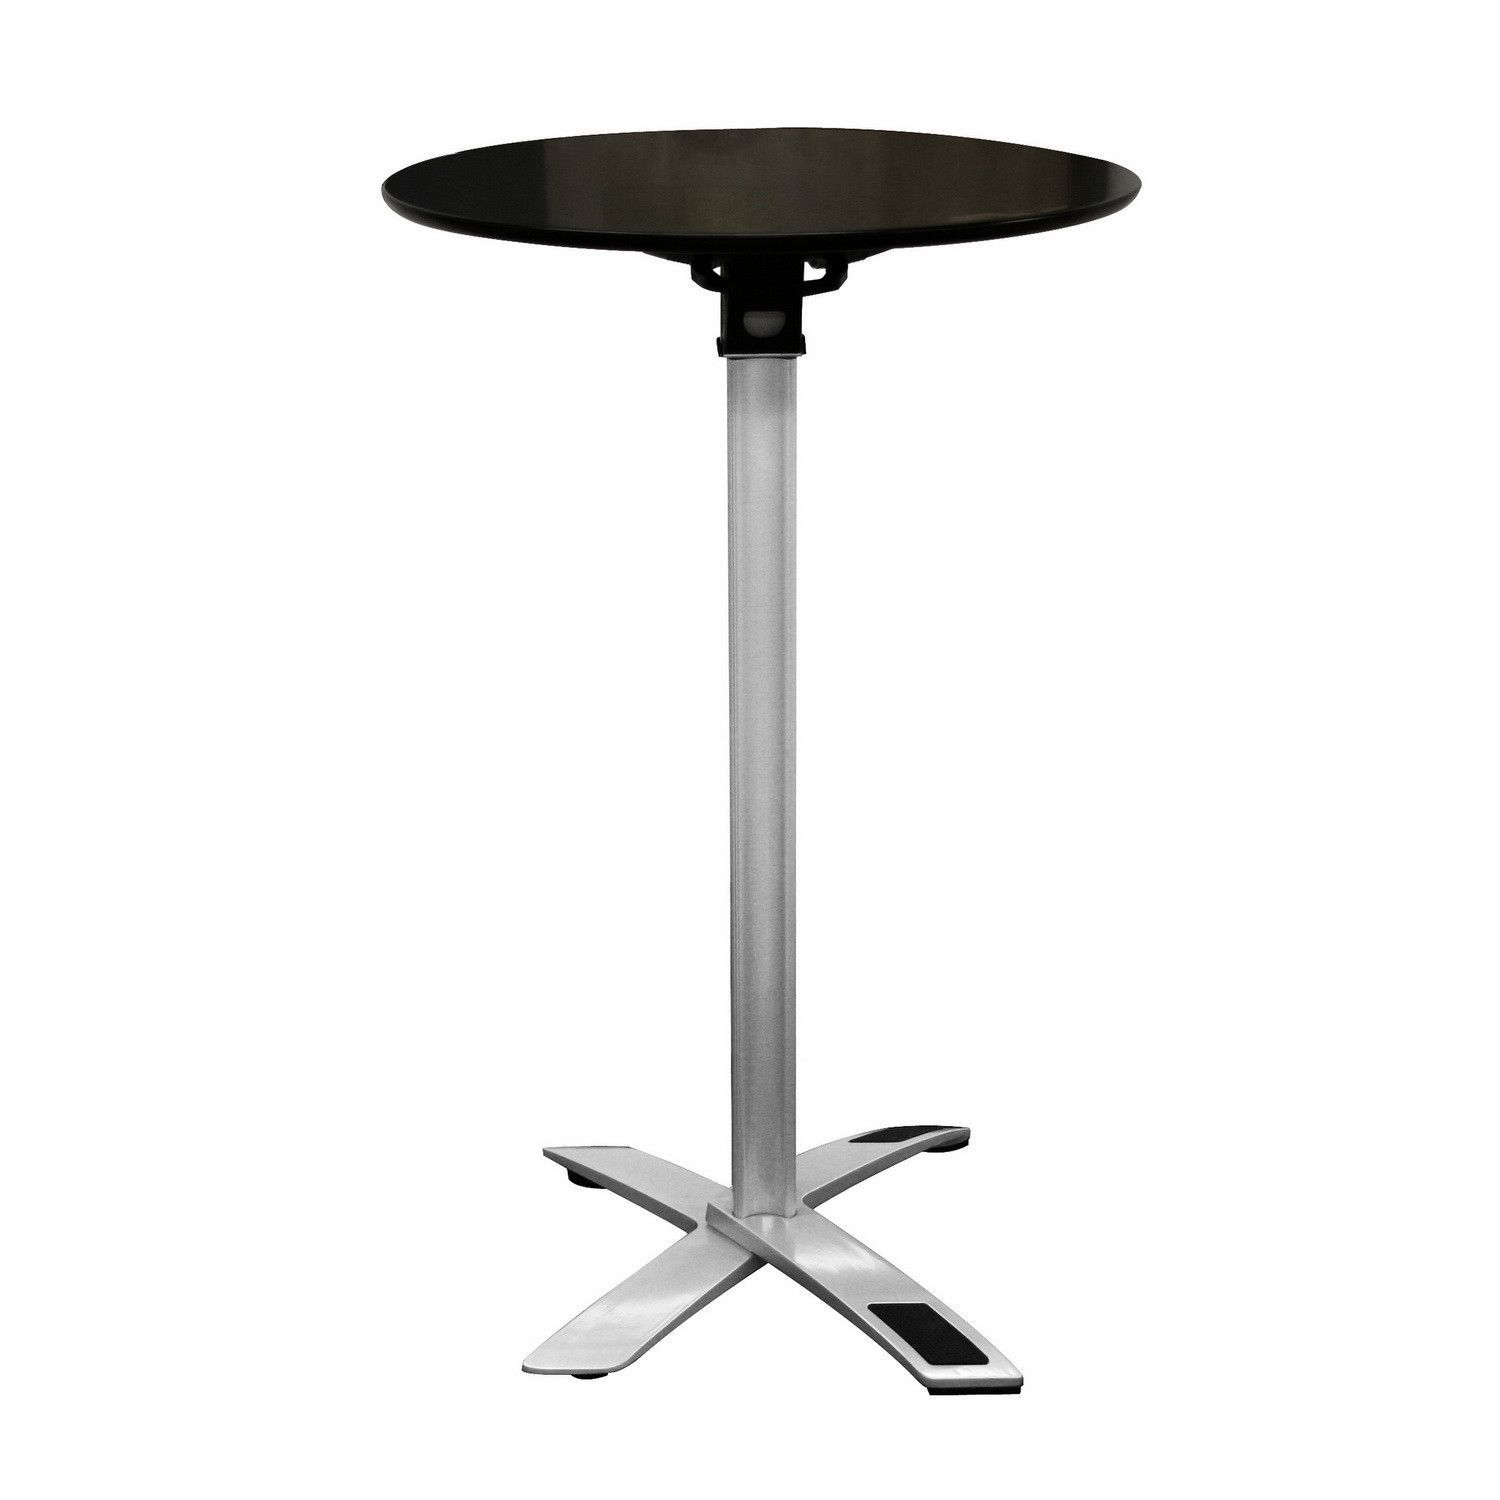 Yang Black / Silver Folding Event Table (Tall Height)